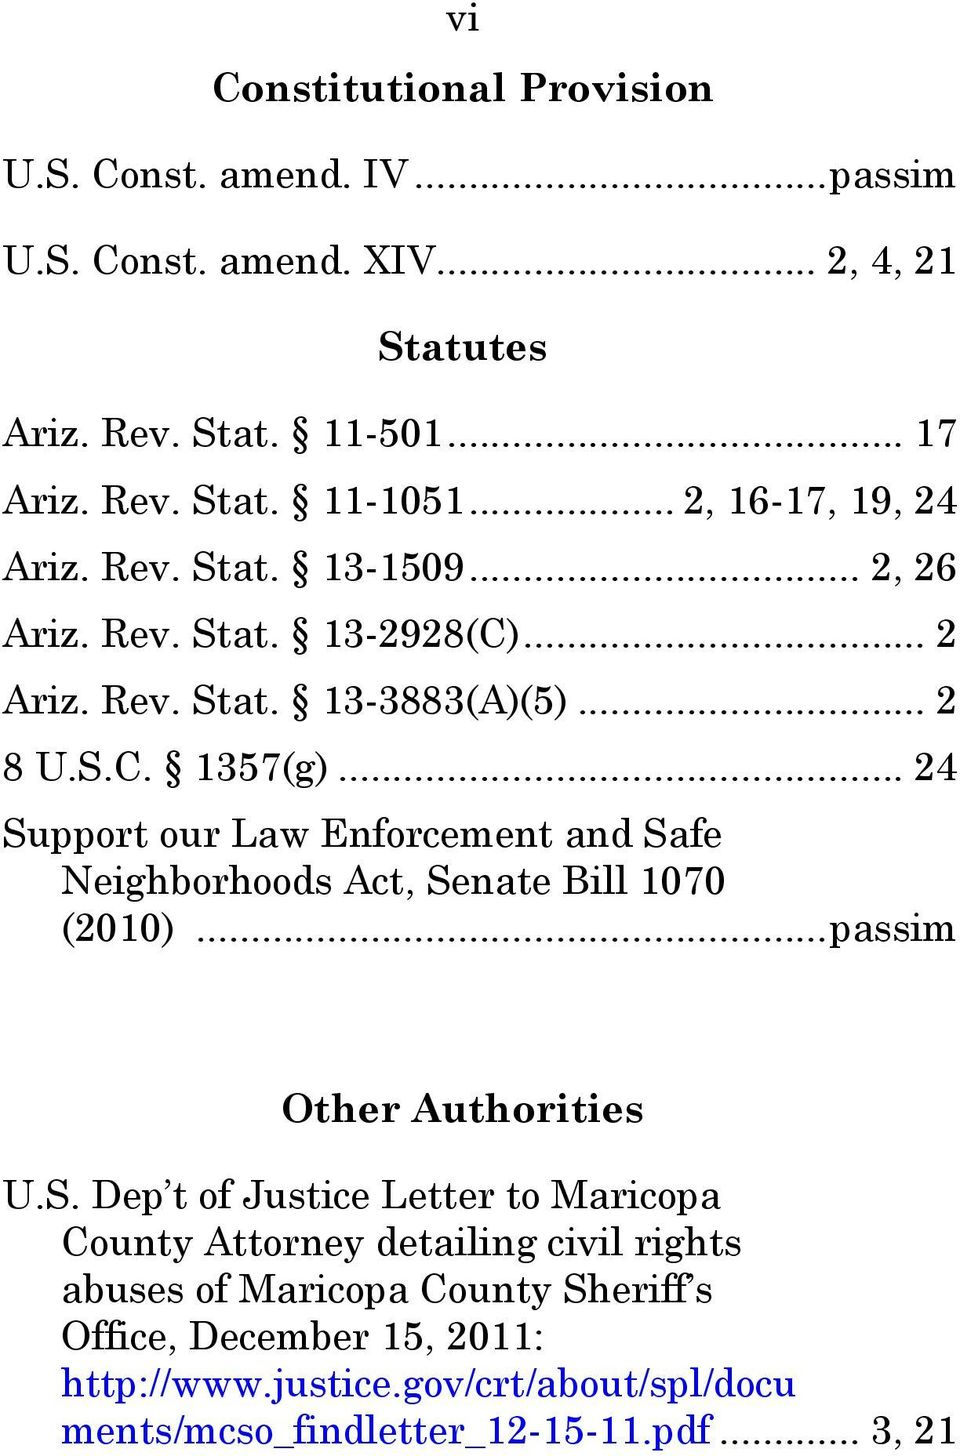 .. 24 Support our Law Enforcement and Safe Neighborhoods Act, Senate Bill 1070 (2010)... passim Other Authorities U.S. Dep t of Justice Letter to Maricopa County Attorney detailing civil rights abuses of Maricopa County Sheriff s Office, December 15, 2011: http://www.